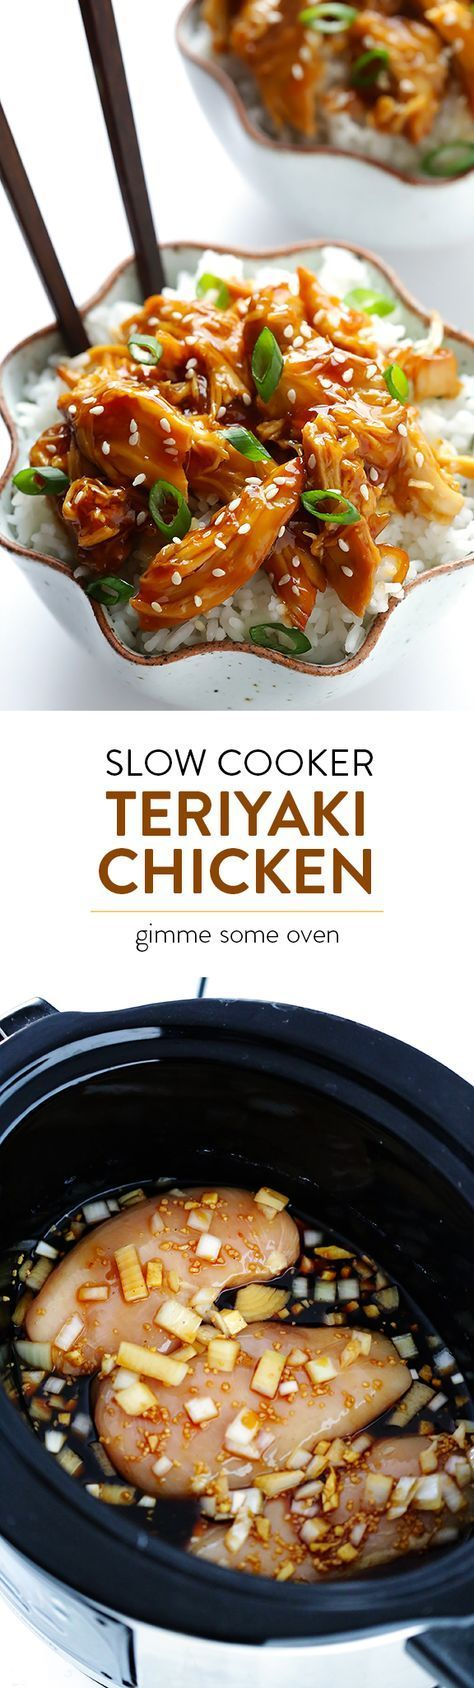 Slow Cooker Teriyaki Chicken -- all you need are 10 minutes to prep this delicious recipe, then let your slow cooker do the rest of the work! | http://gimmesomeoven.com